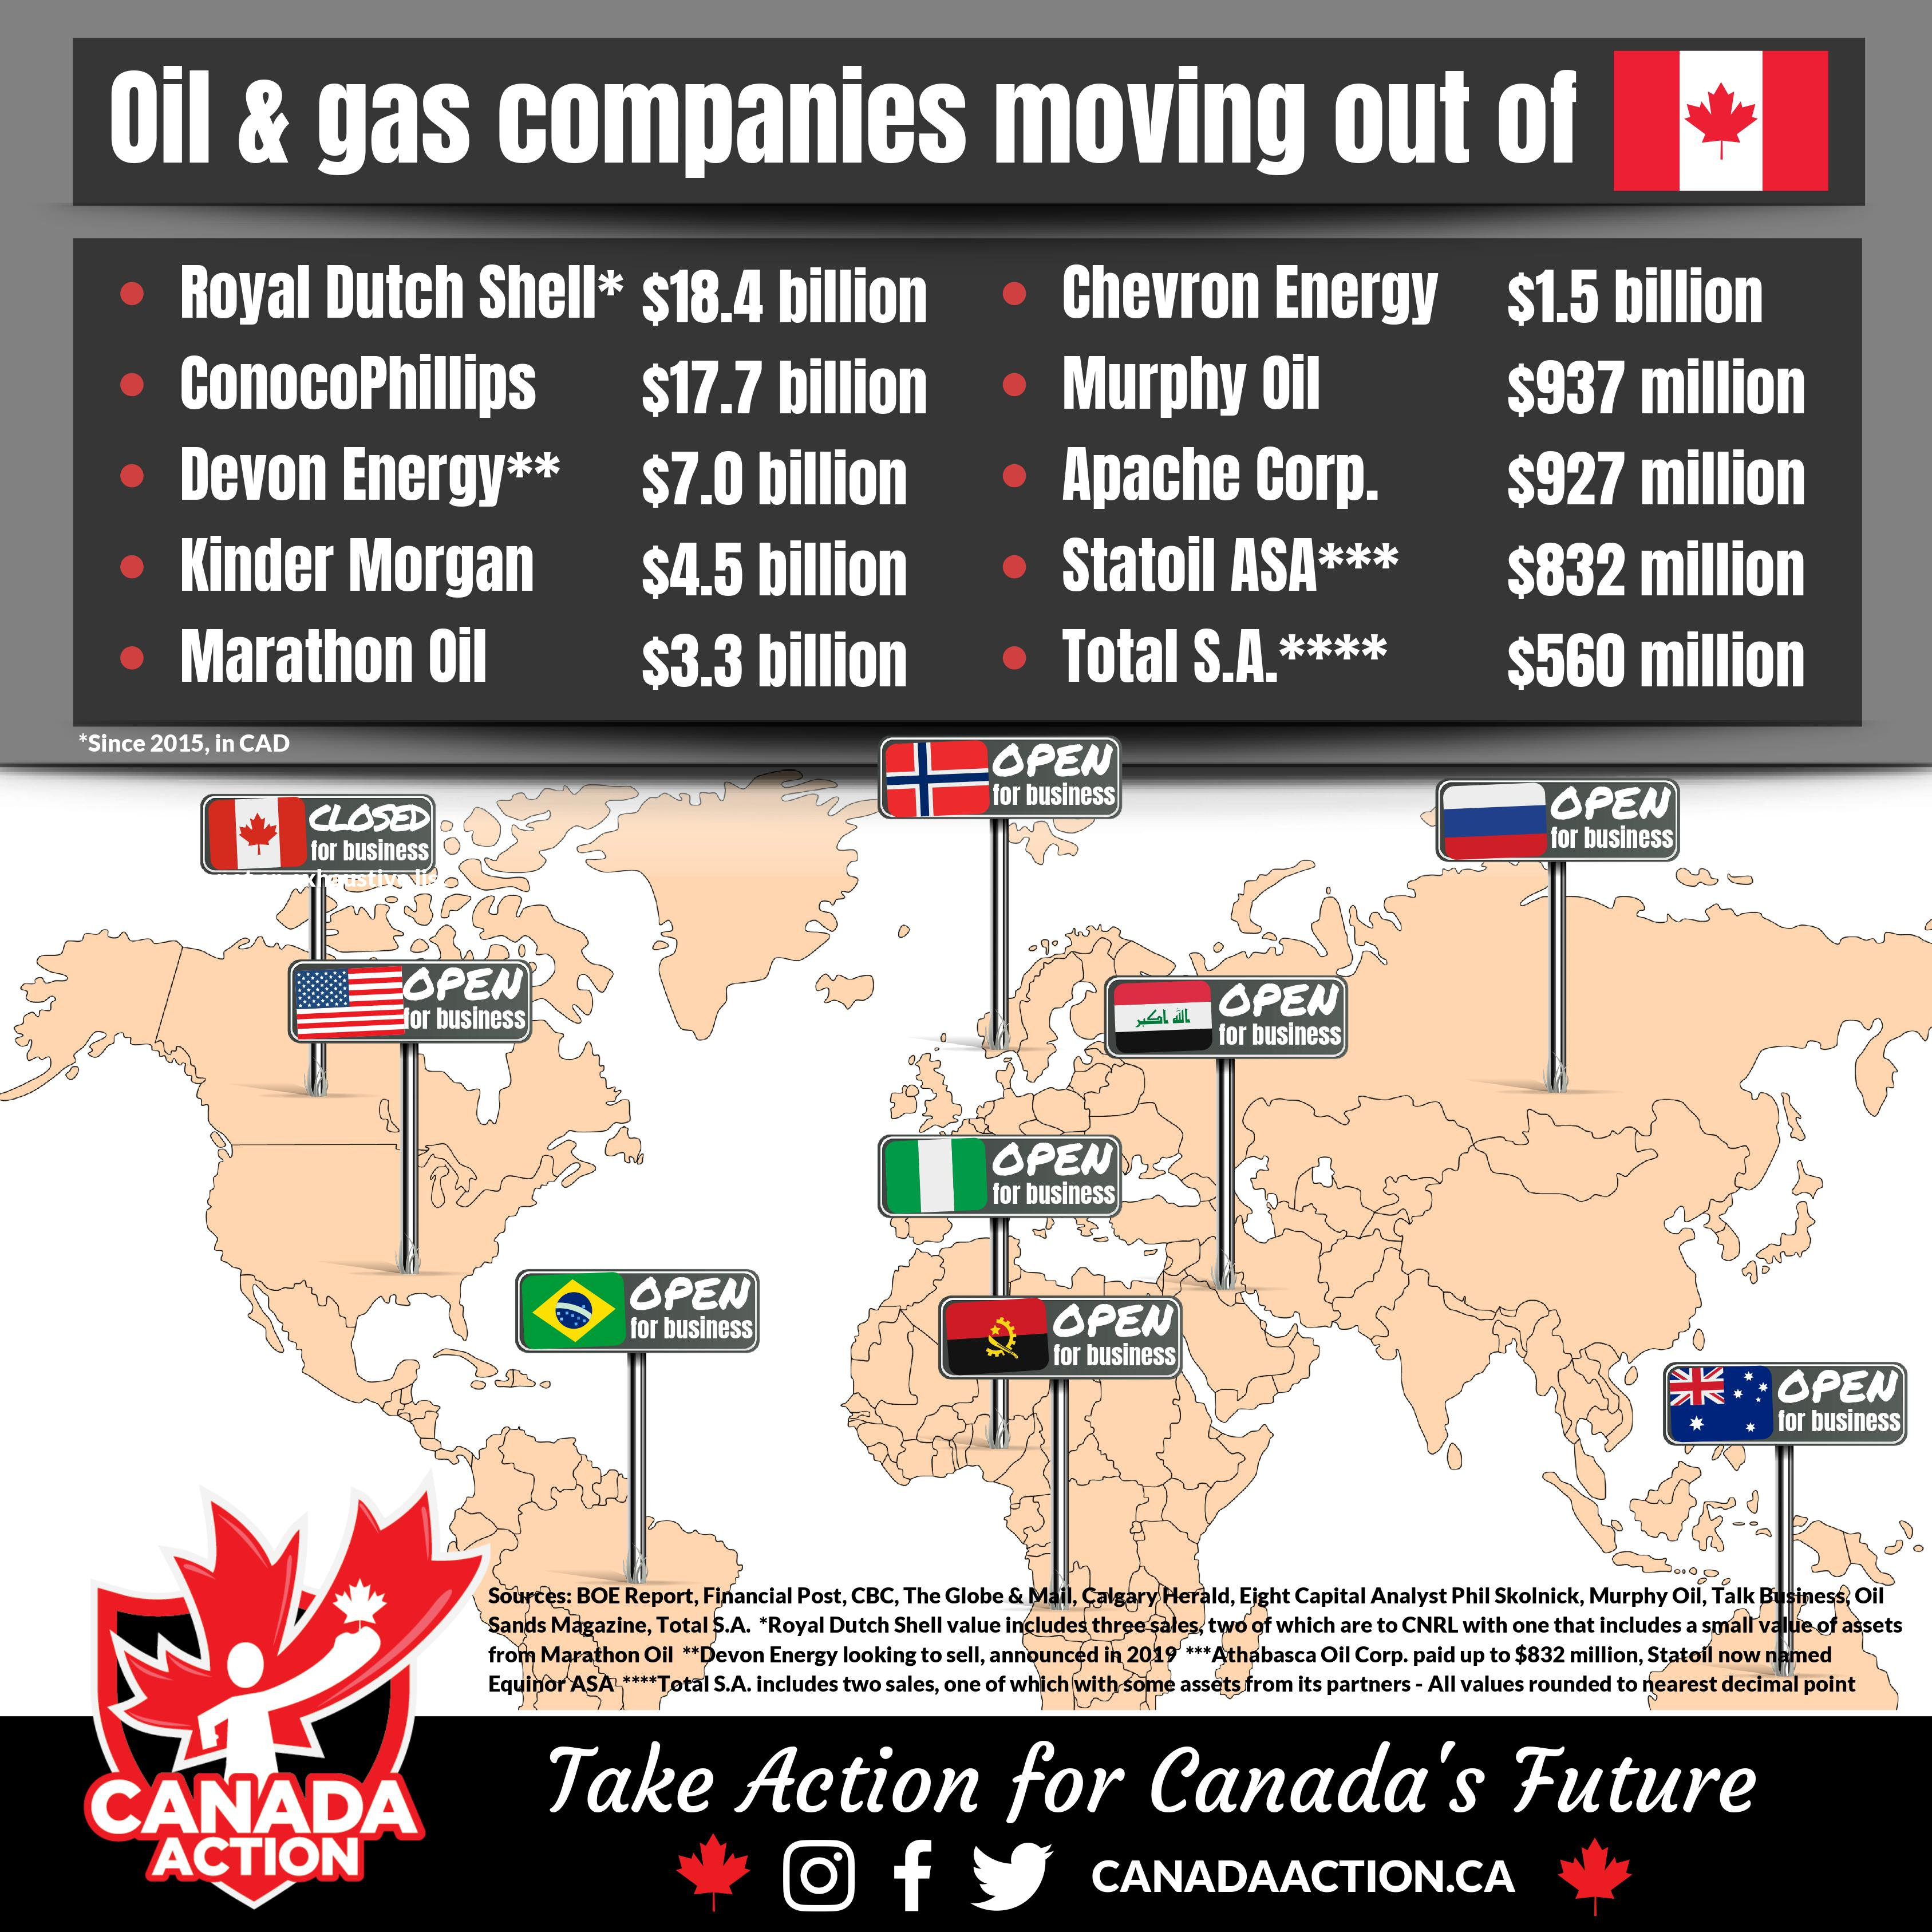 oil and gas companies divesting from Canada